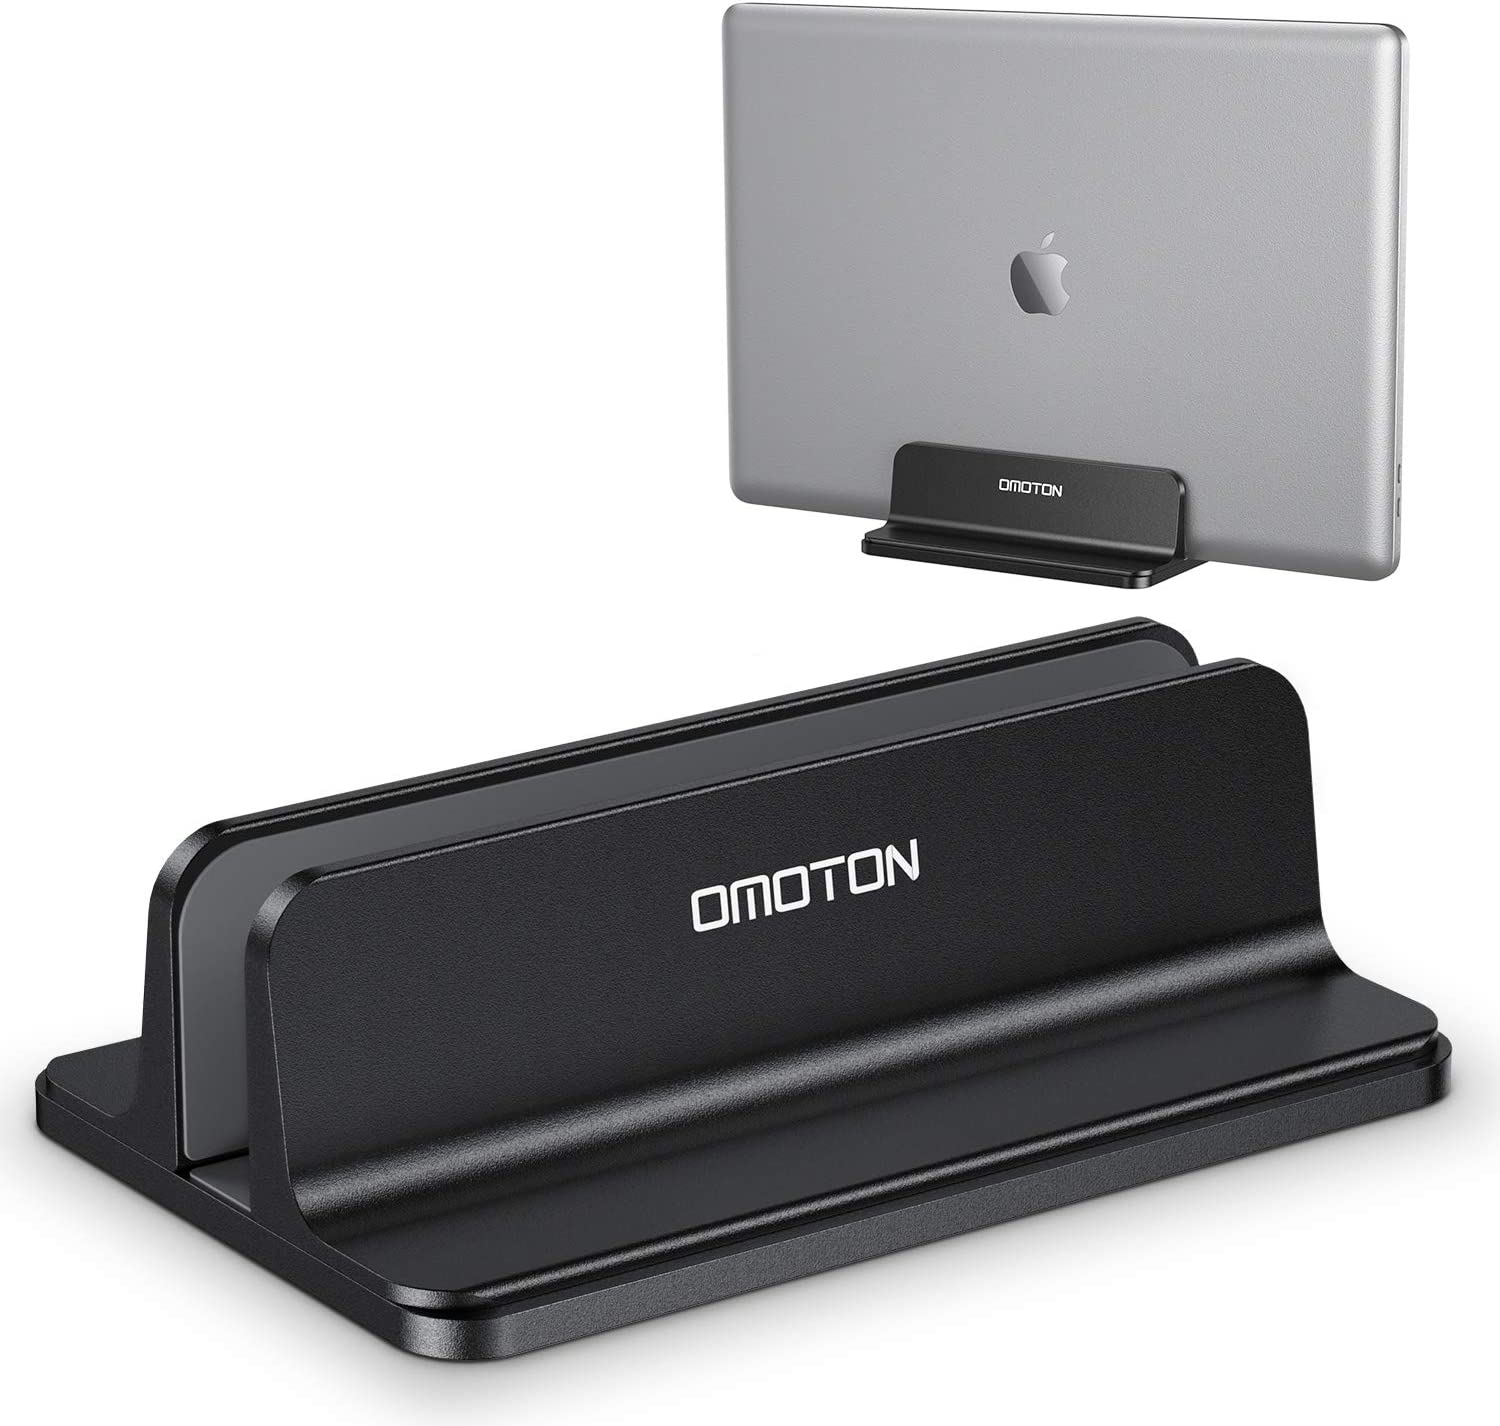 Vertical Laptop Stand, OMOTON MacBook Stand with Adjustable Dock Size, Fits All MacBook, Surface, Chromebook and Gaming Laptops(Up to 17.3 inch),Black